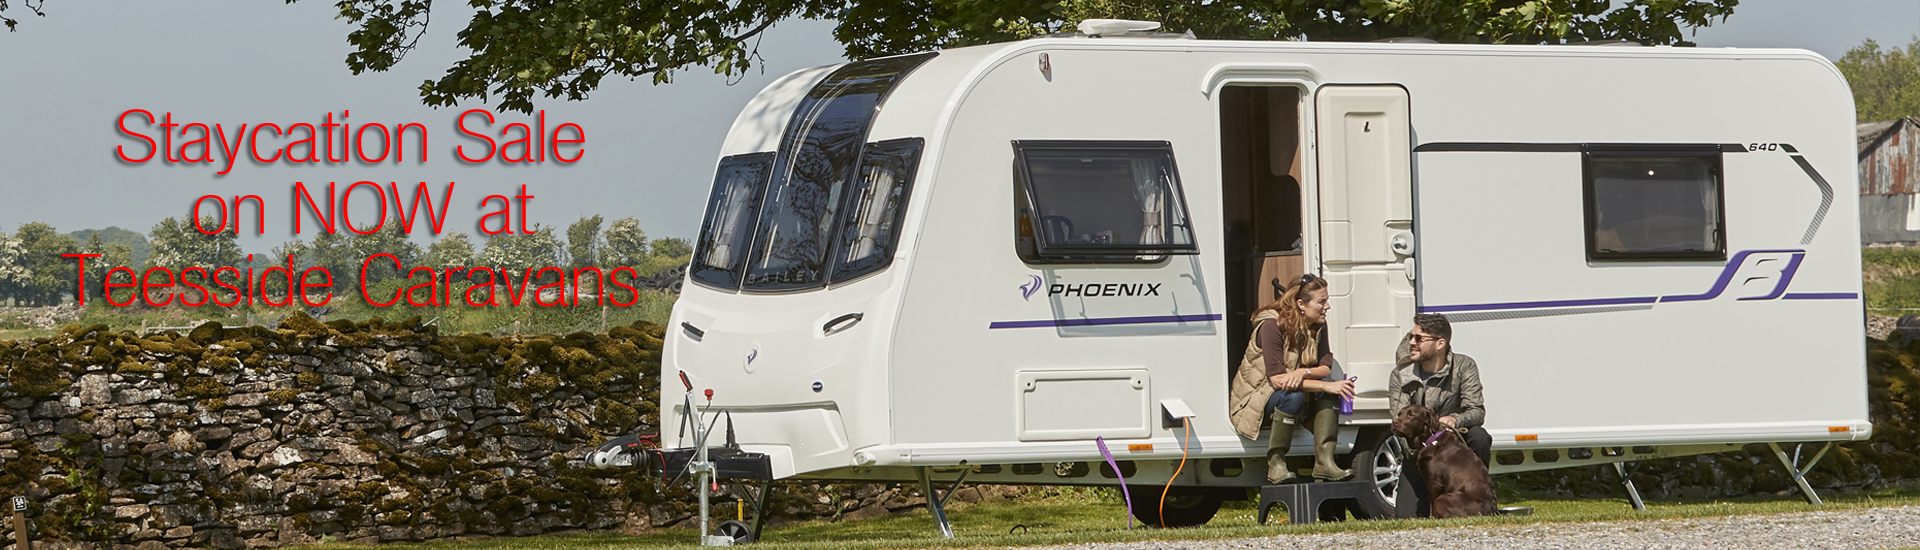 Staycation Sale on NOW at Teesside Caravans